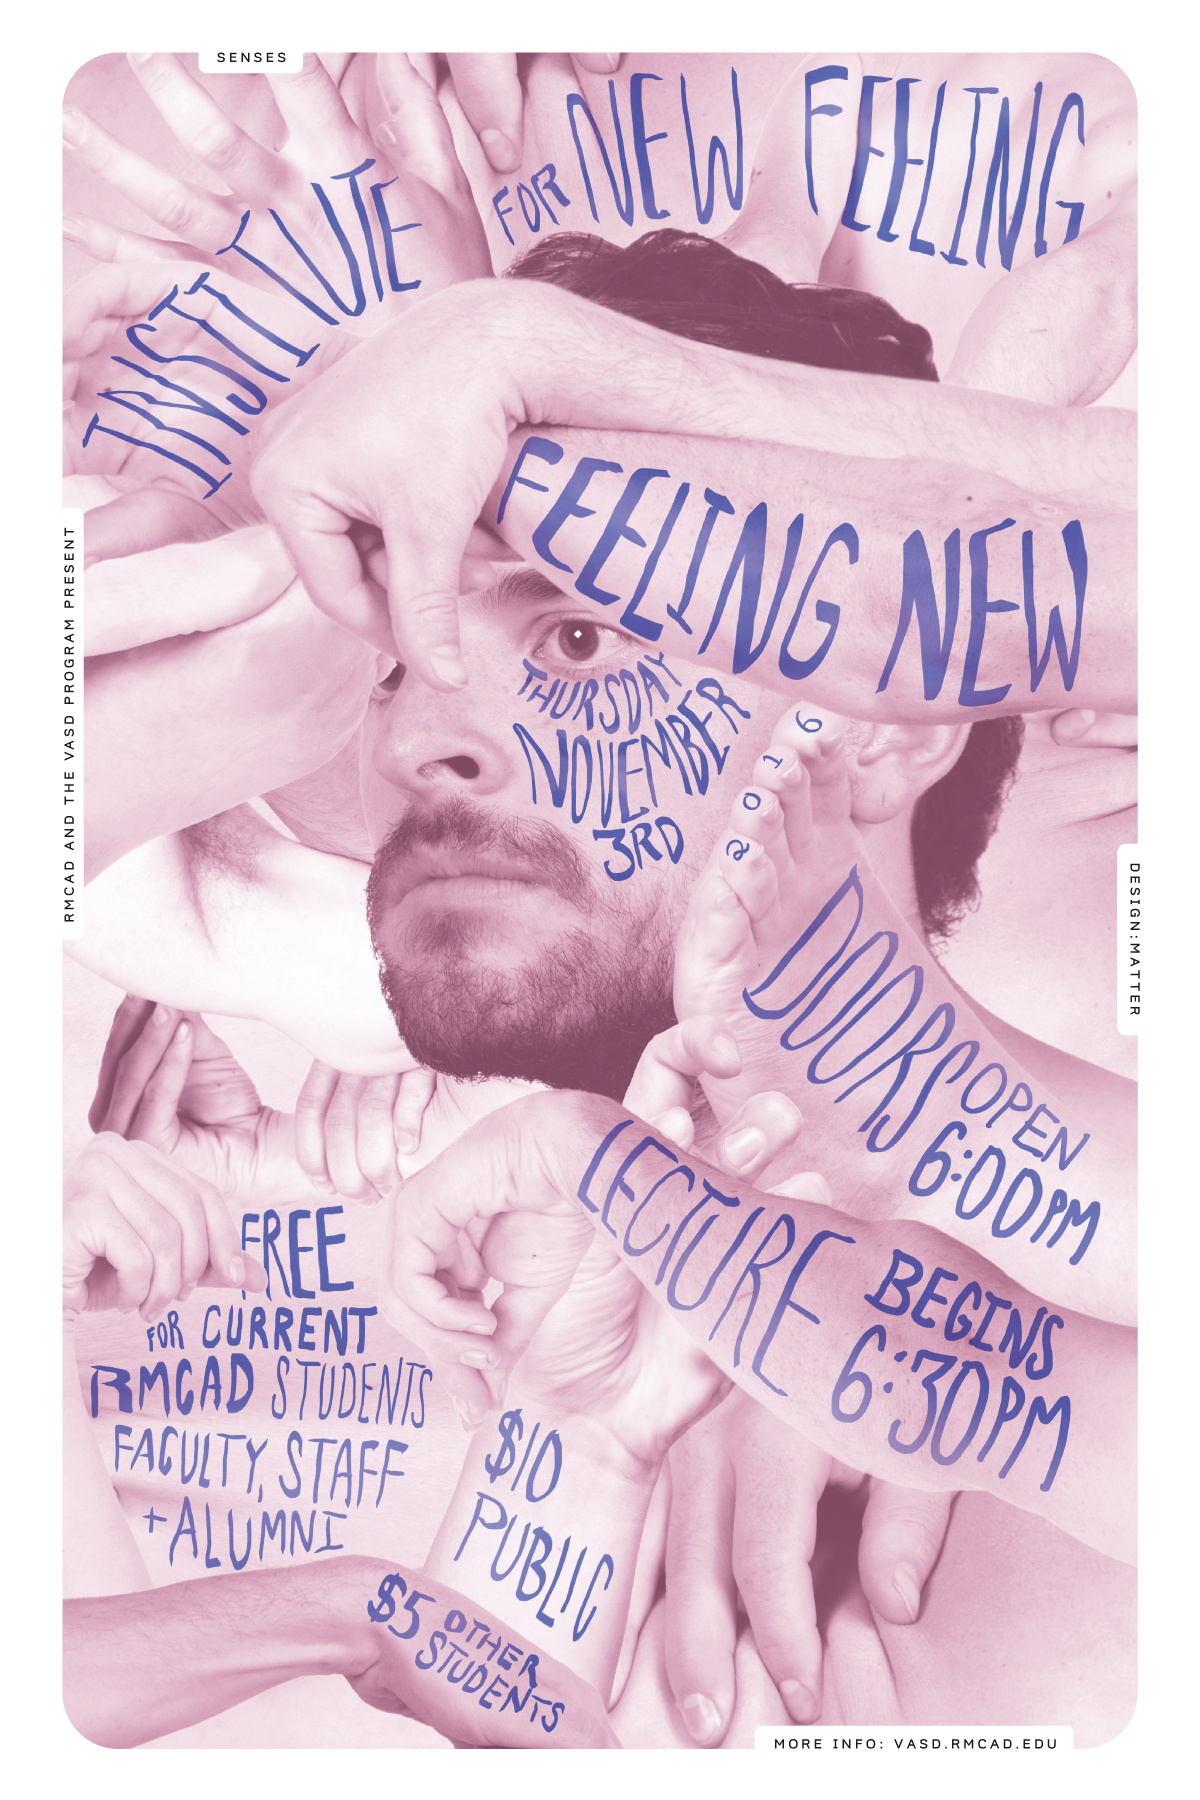 RMCAD welcomes Institute of New Feeling